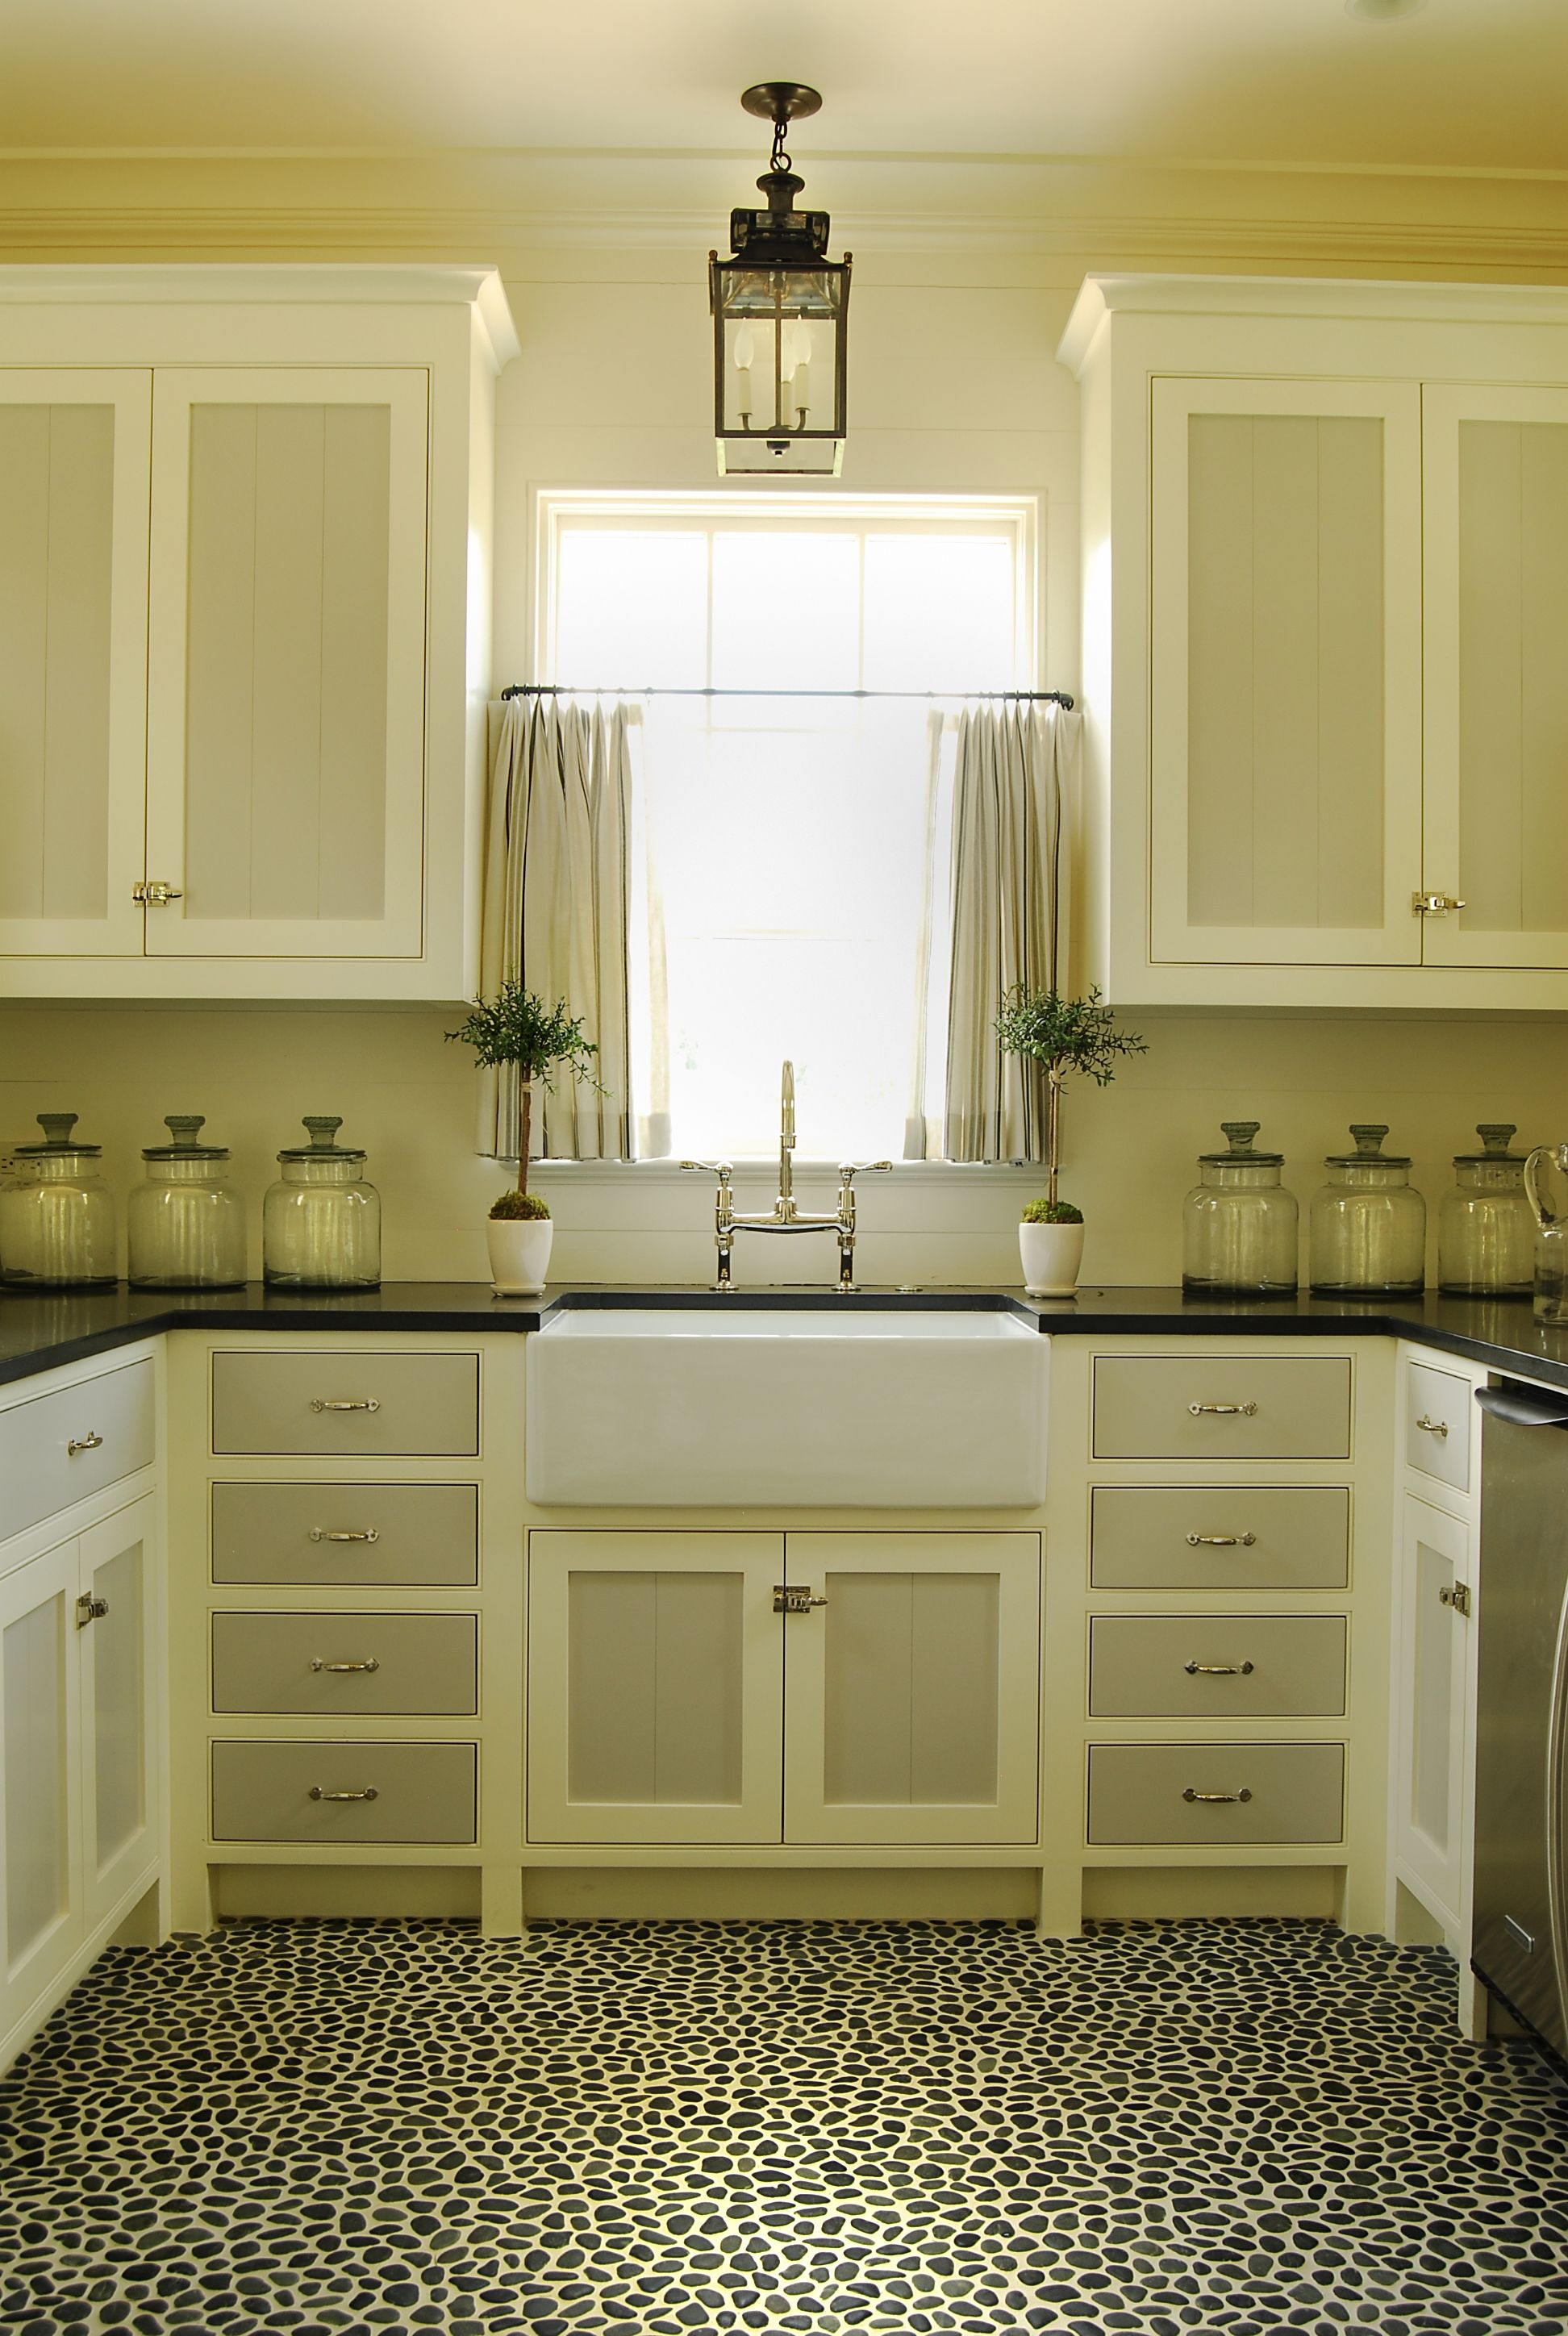 River Rock Floor Two Toned Cabinets Lantern Perfect Symmetry Two Tone Kitchen Cabinets Cosy Kitchen Home